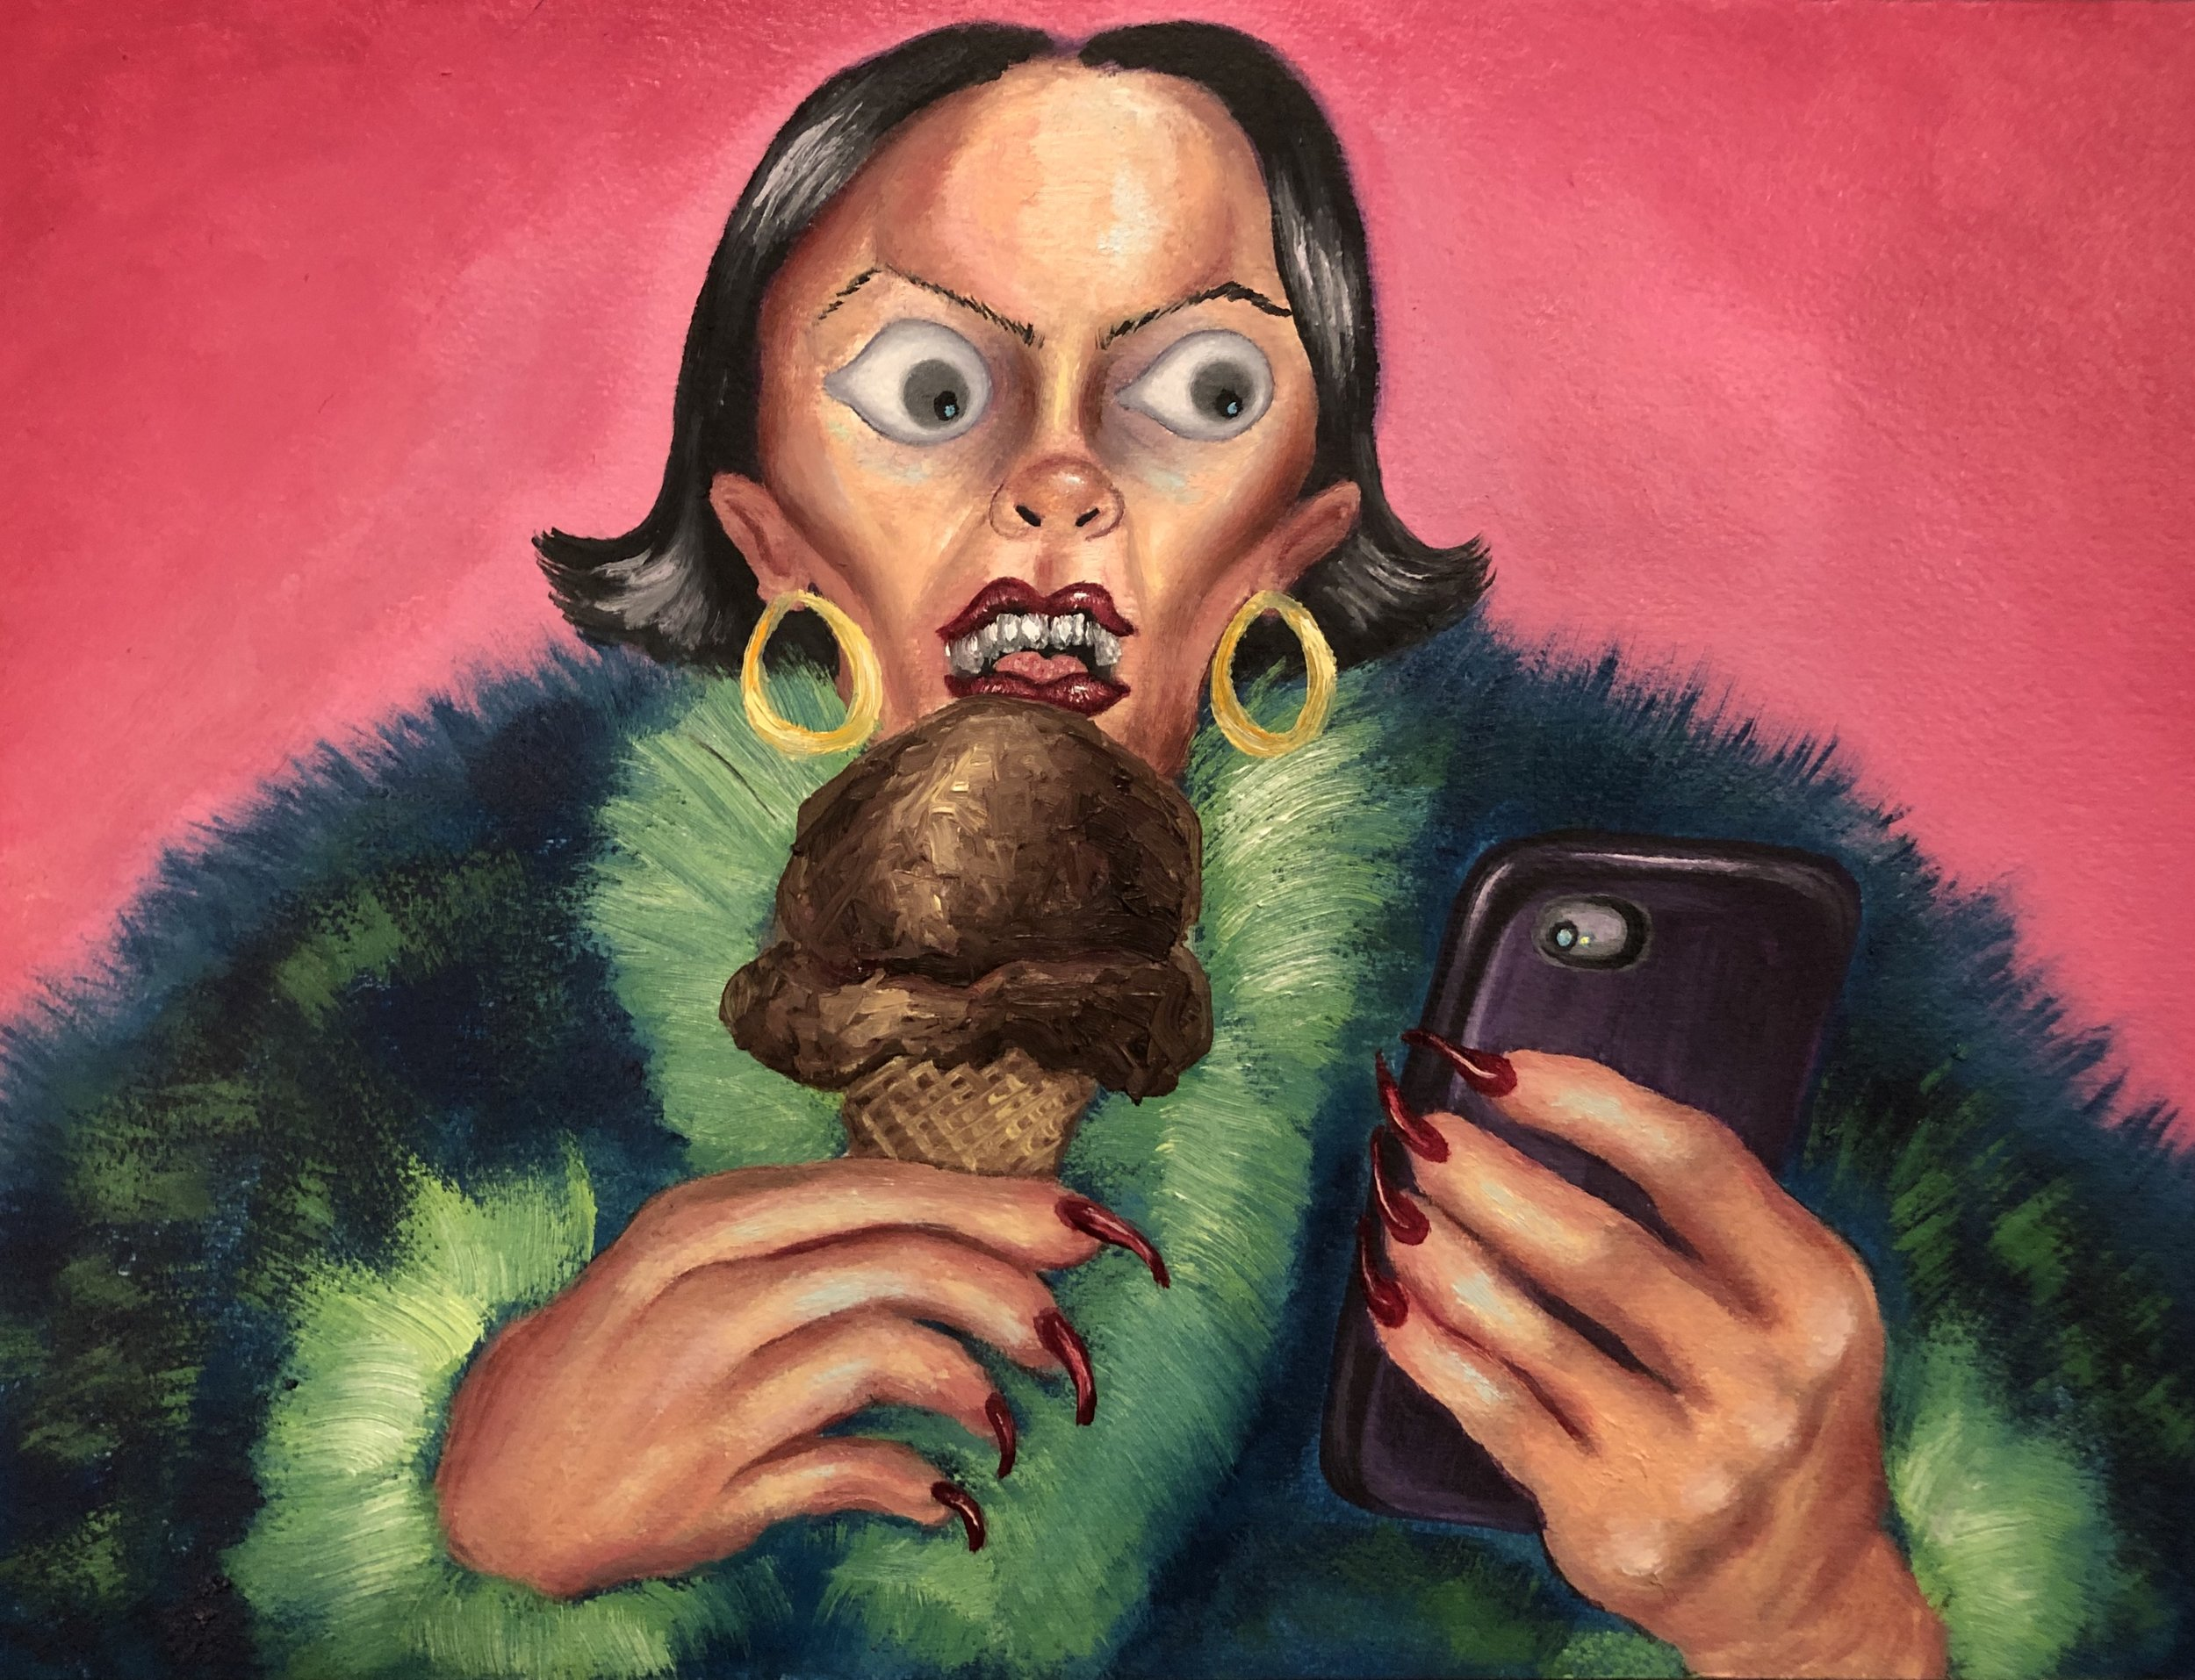 Eating Ice Cream and Sexting  Oil paint on paper  2019